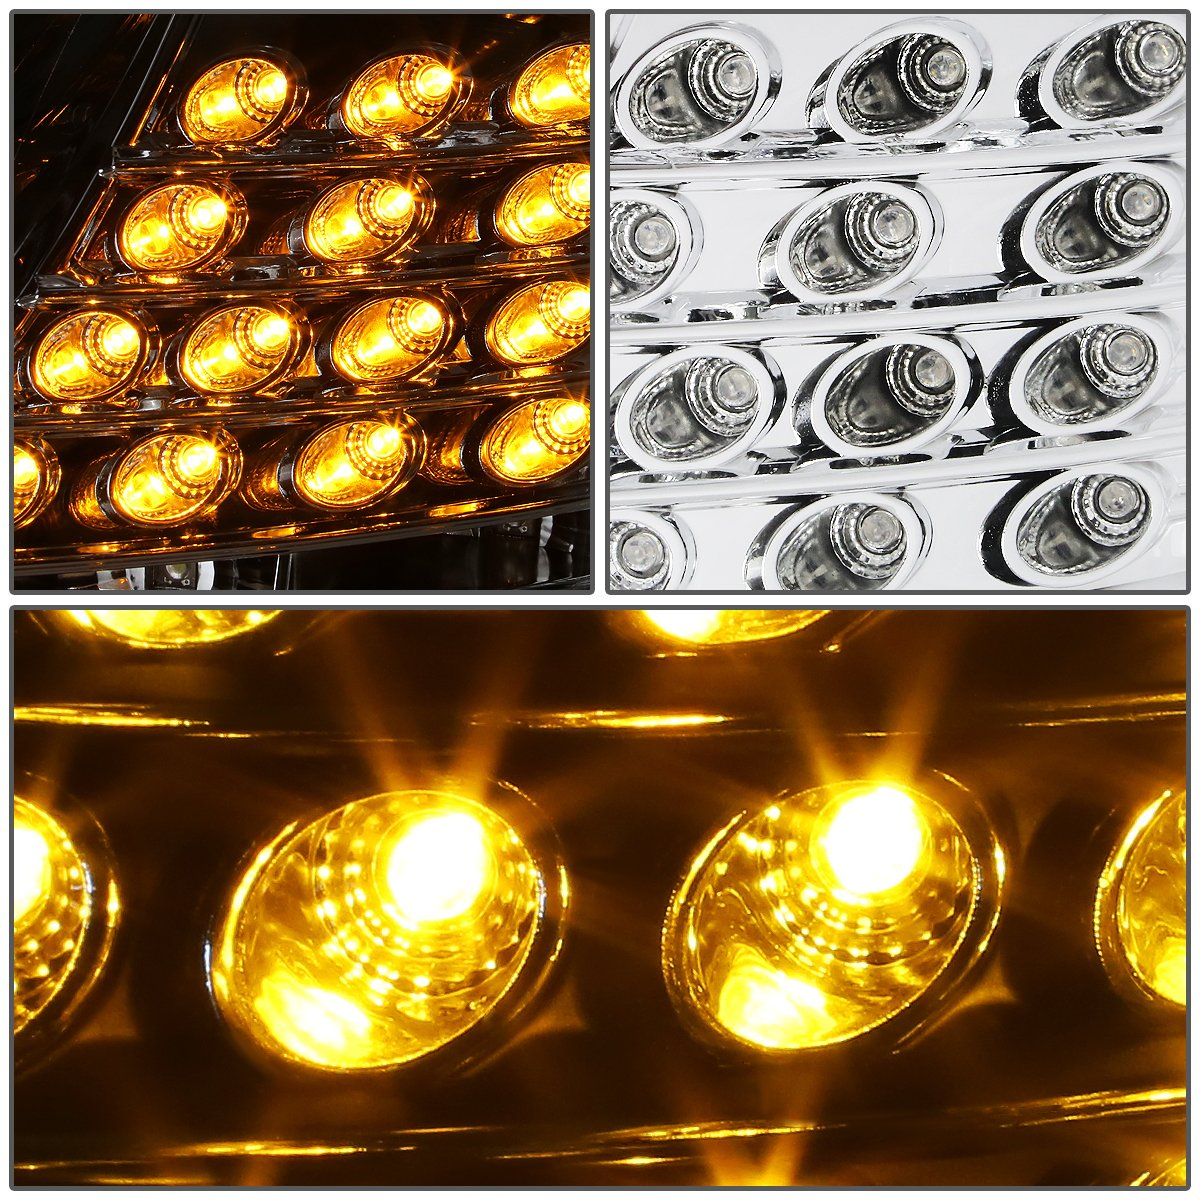 For Audi A6 Quattro C5 Typ 4b Pair Of Chrome All Lights Meaning Housing Amber Corner Projector Headlight Led Drl Automotive